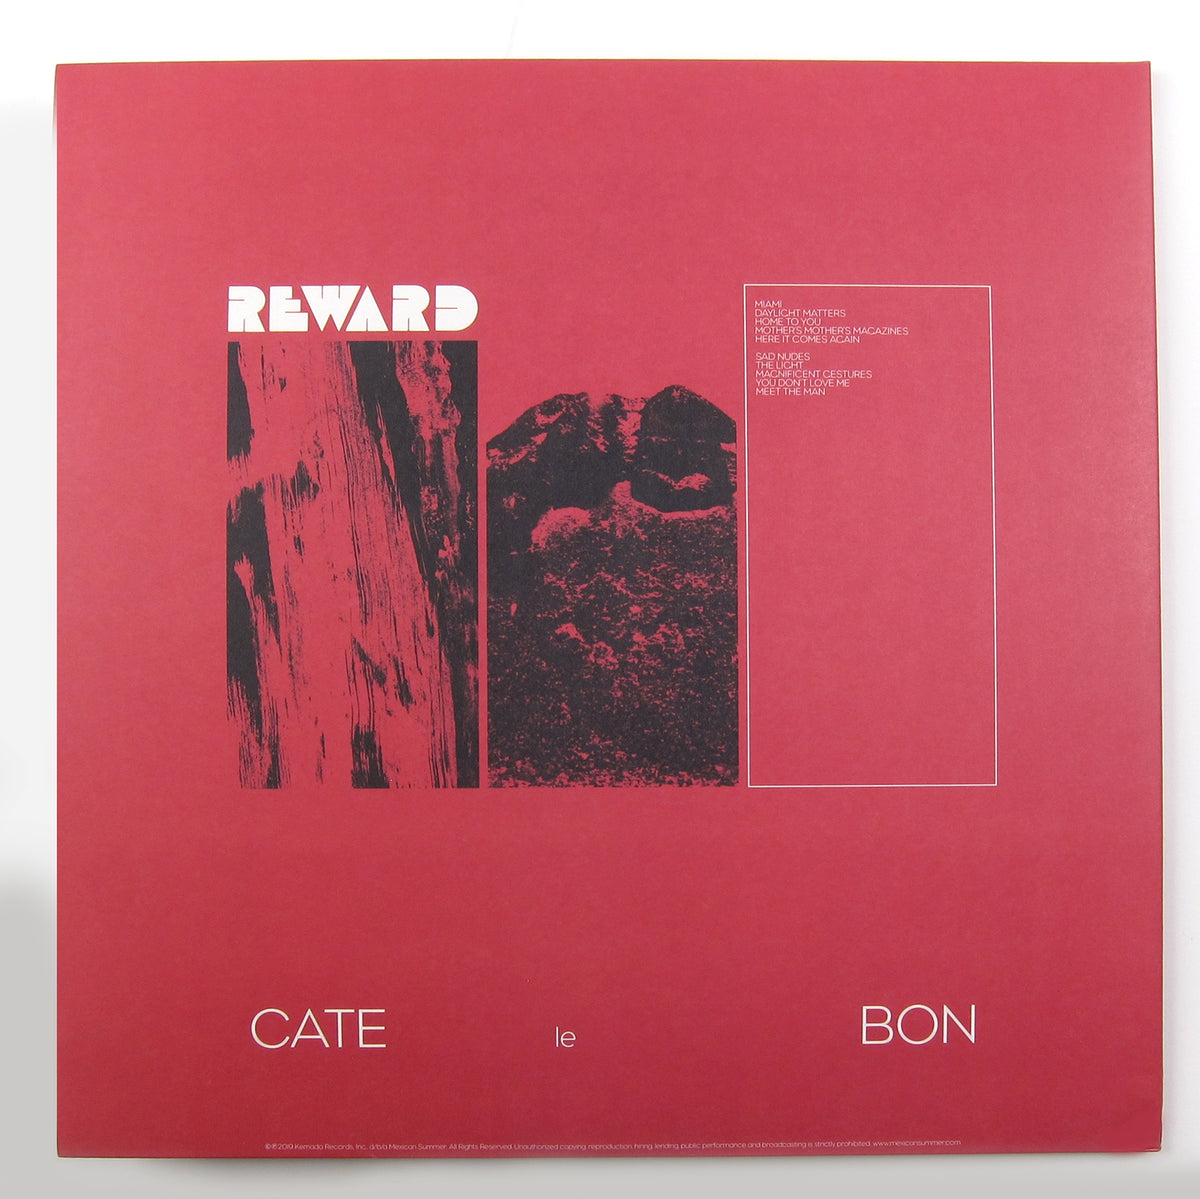 Cate Le Bon: Reward (Indie Exclusive Colored Vinyl) Vinyl LP